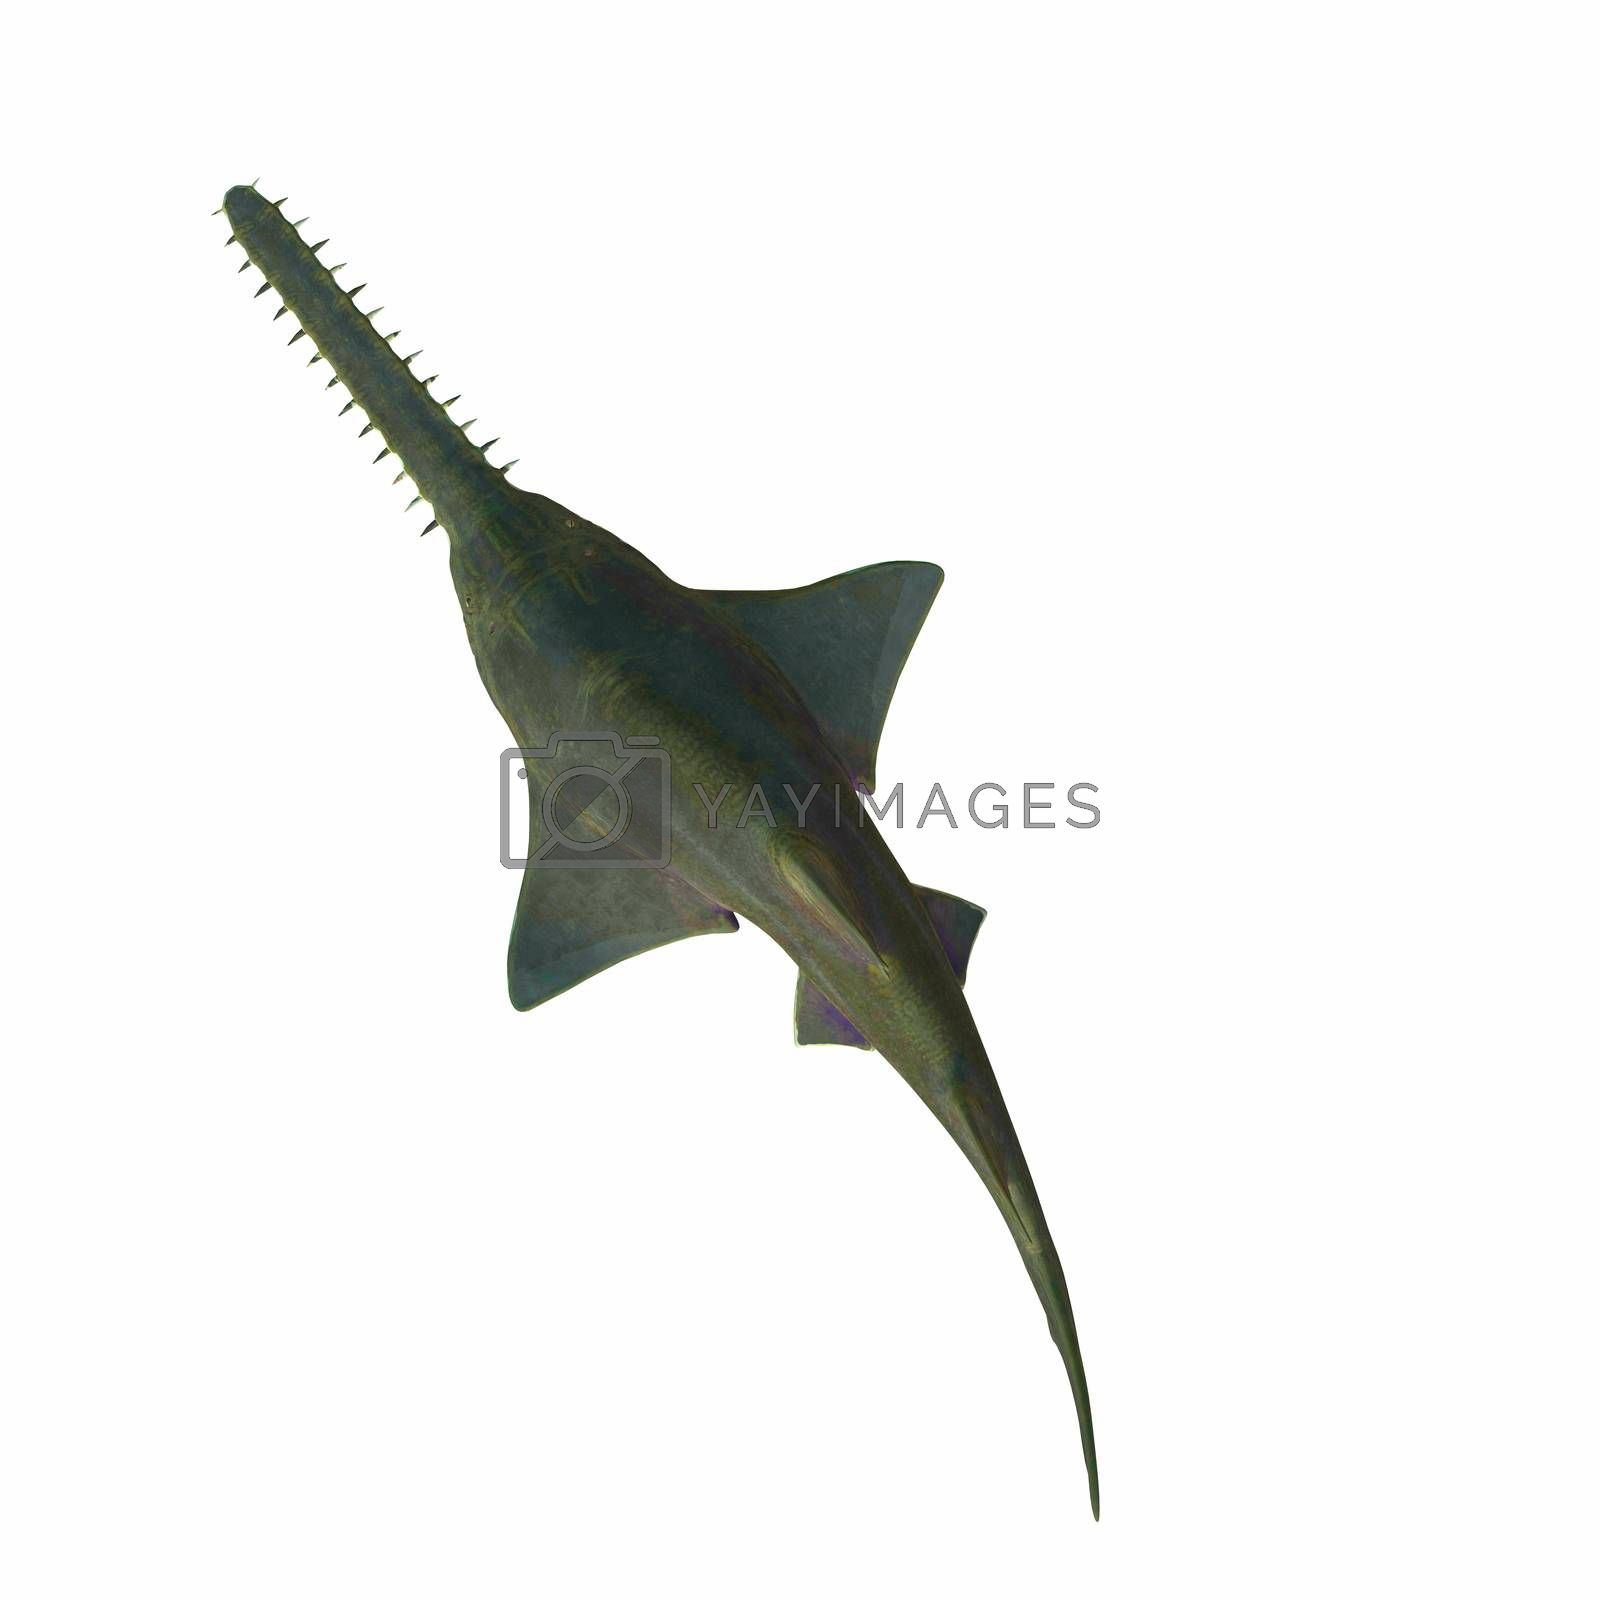 This predatory shark Onchopristis Sawfish lived in the seas of several countries during the Cretaceous Period.